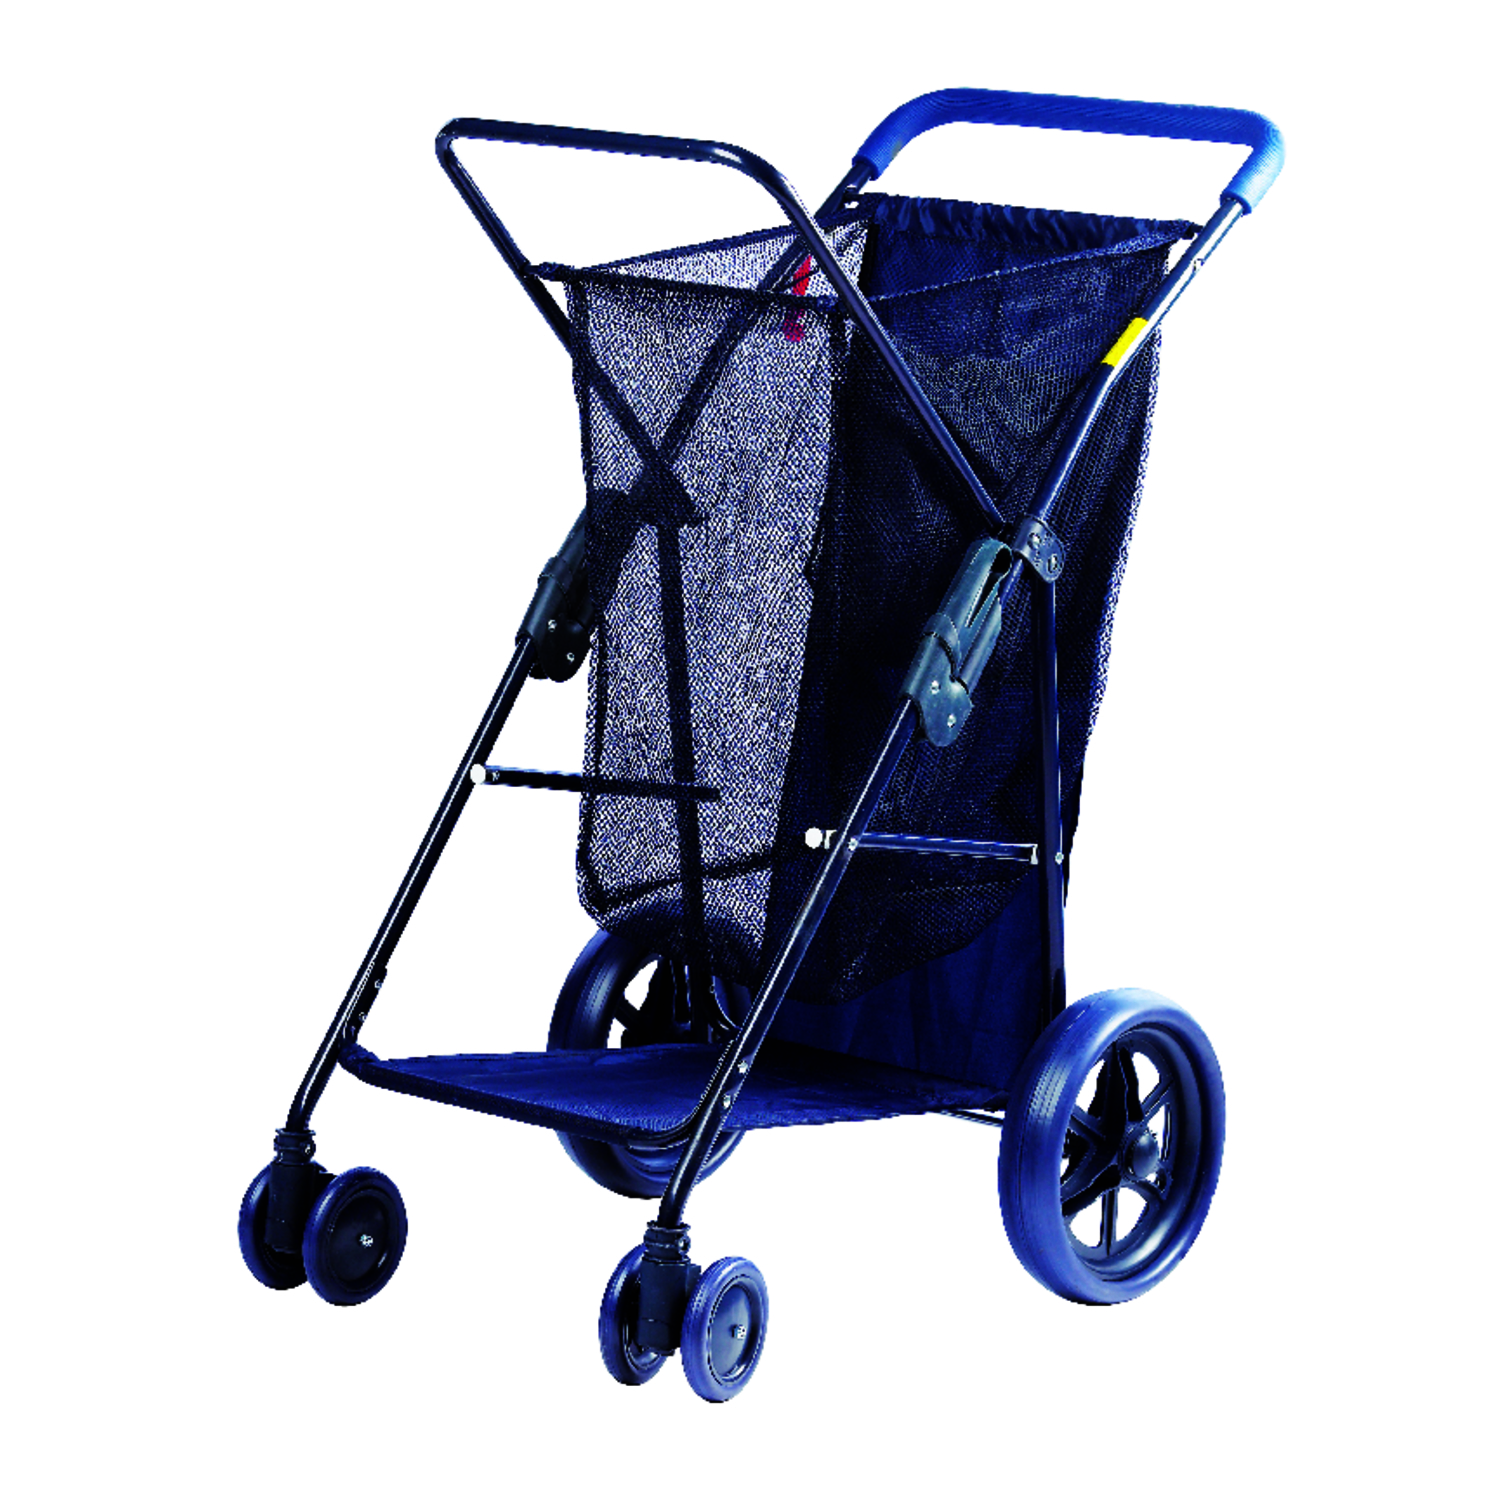 Rio Brands  38-1/2 in. H x 21-3/4 in. W Utility Cart  Collapsible